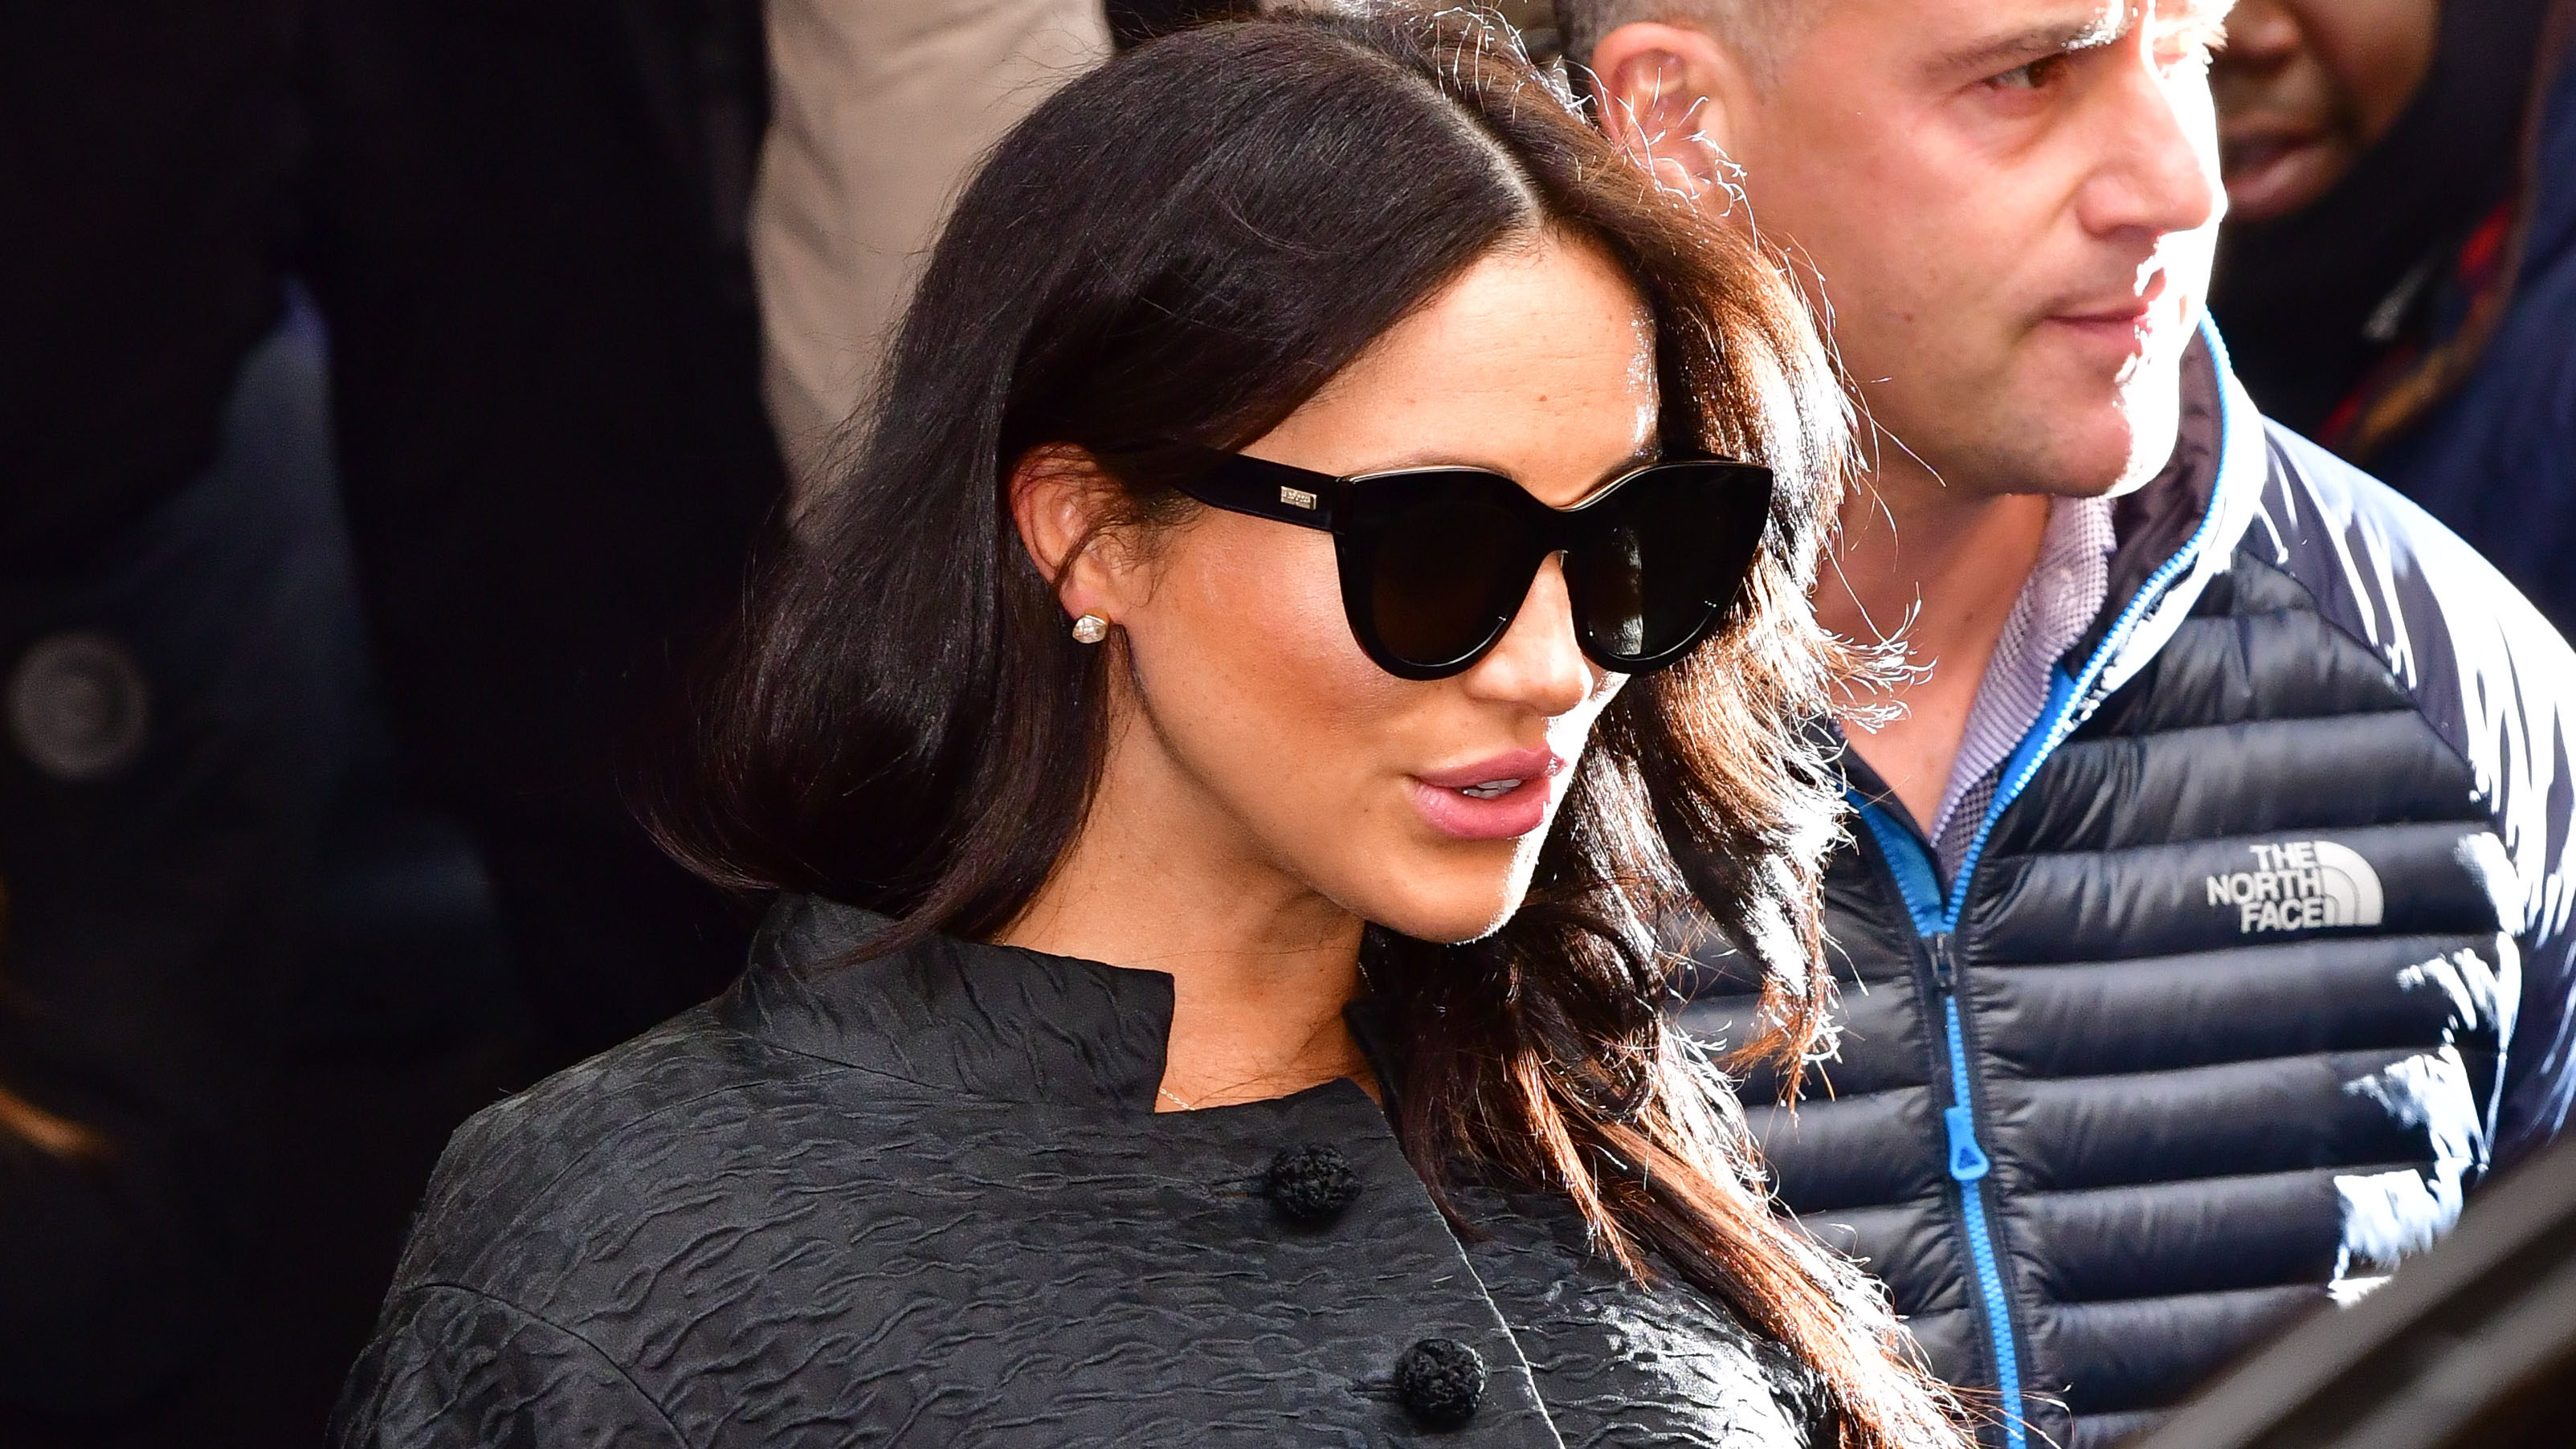 Meghan Markle's High-Fashion NYC Outfits Are Much Different Than Her Usual Royal Style